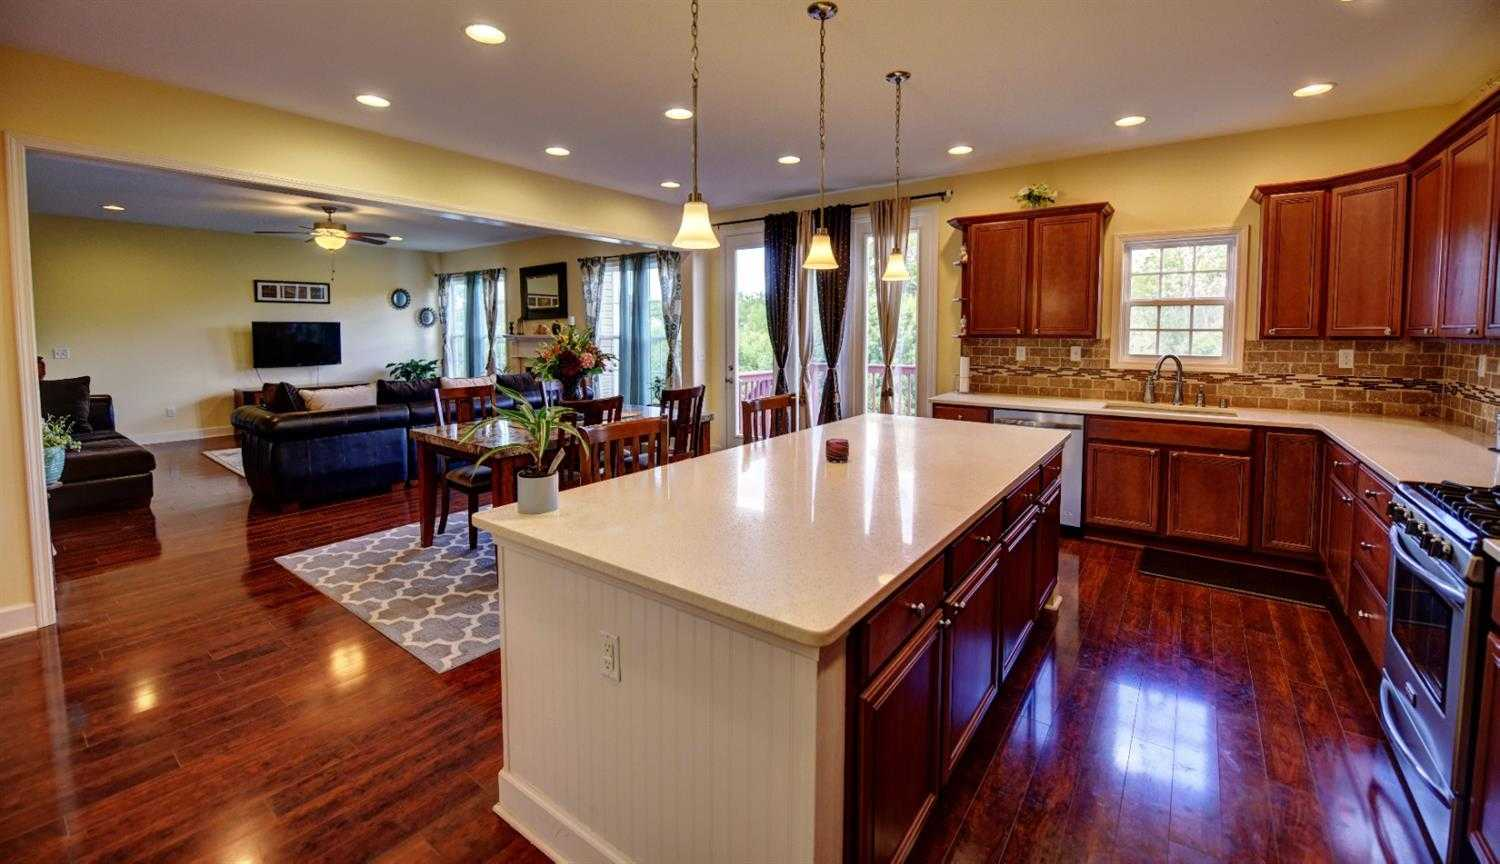 $342,000 - 4Br/3Ba -  for Sale in Willow Bend, Lexington